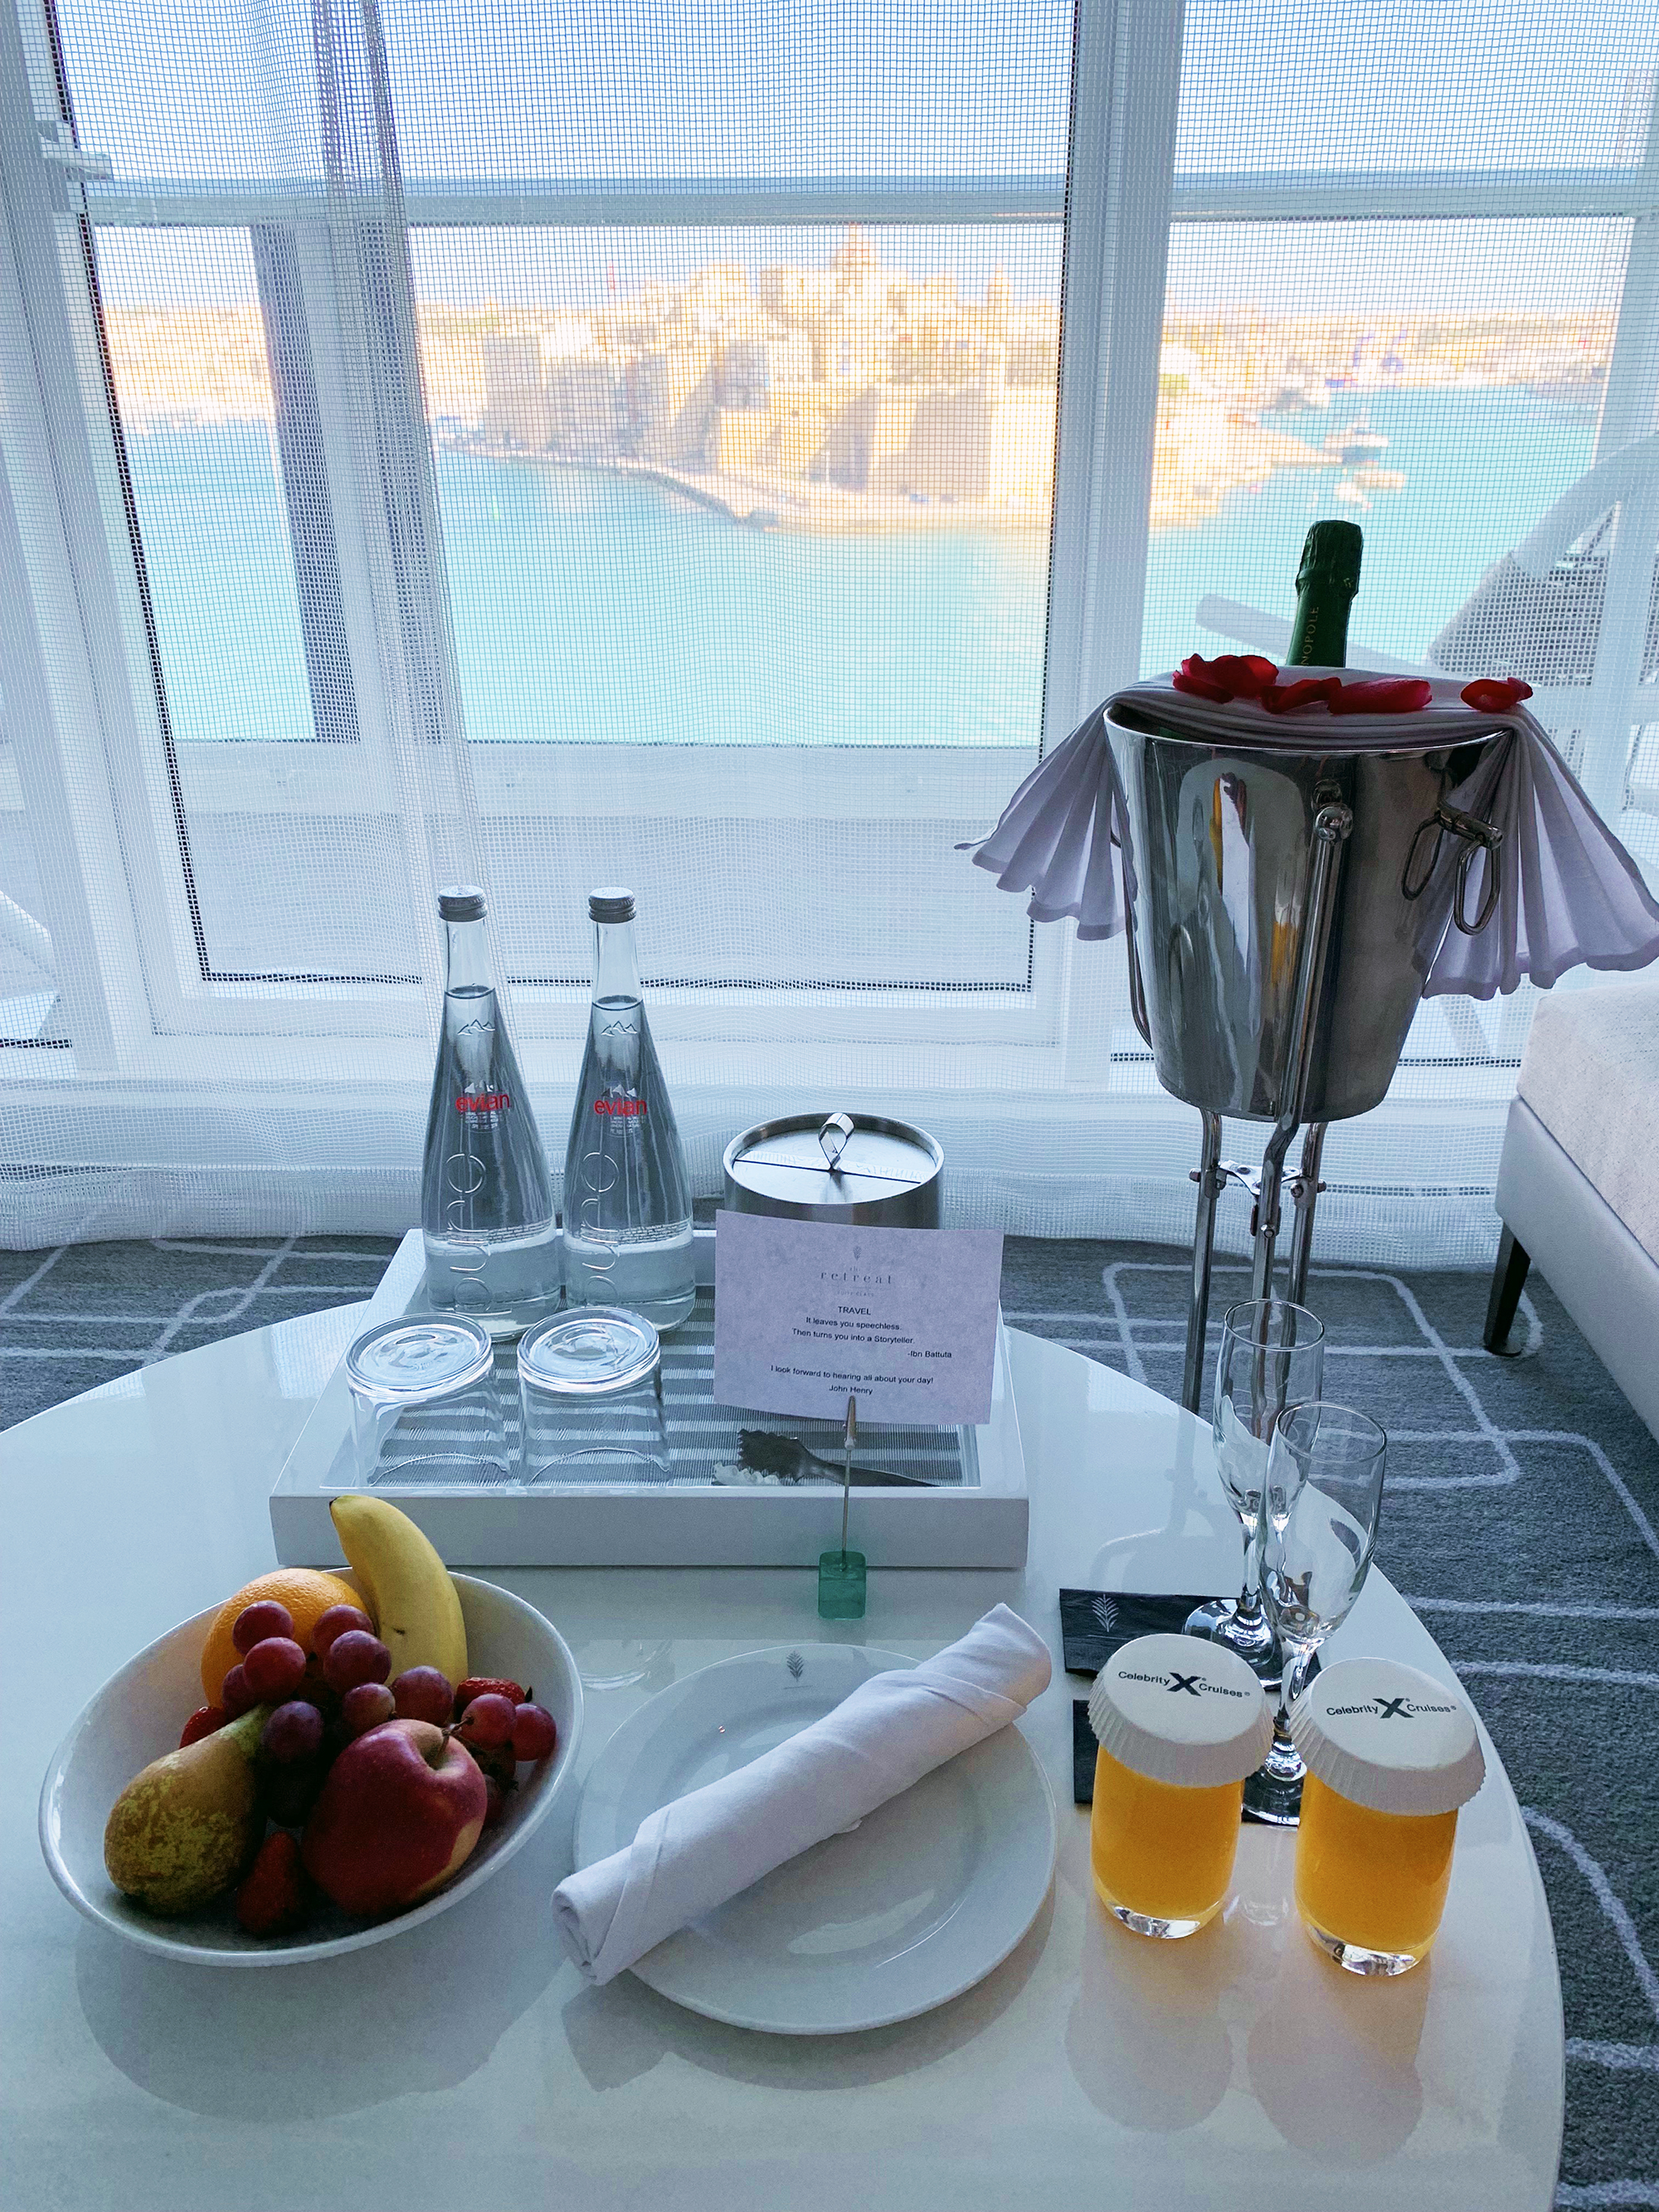 Daily touches from our butler, John Henry. Oh, and the OJ was fresh-squeezed!